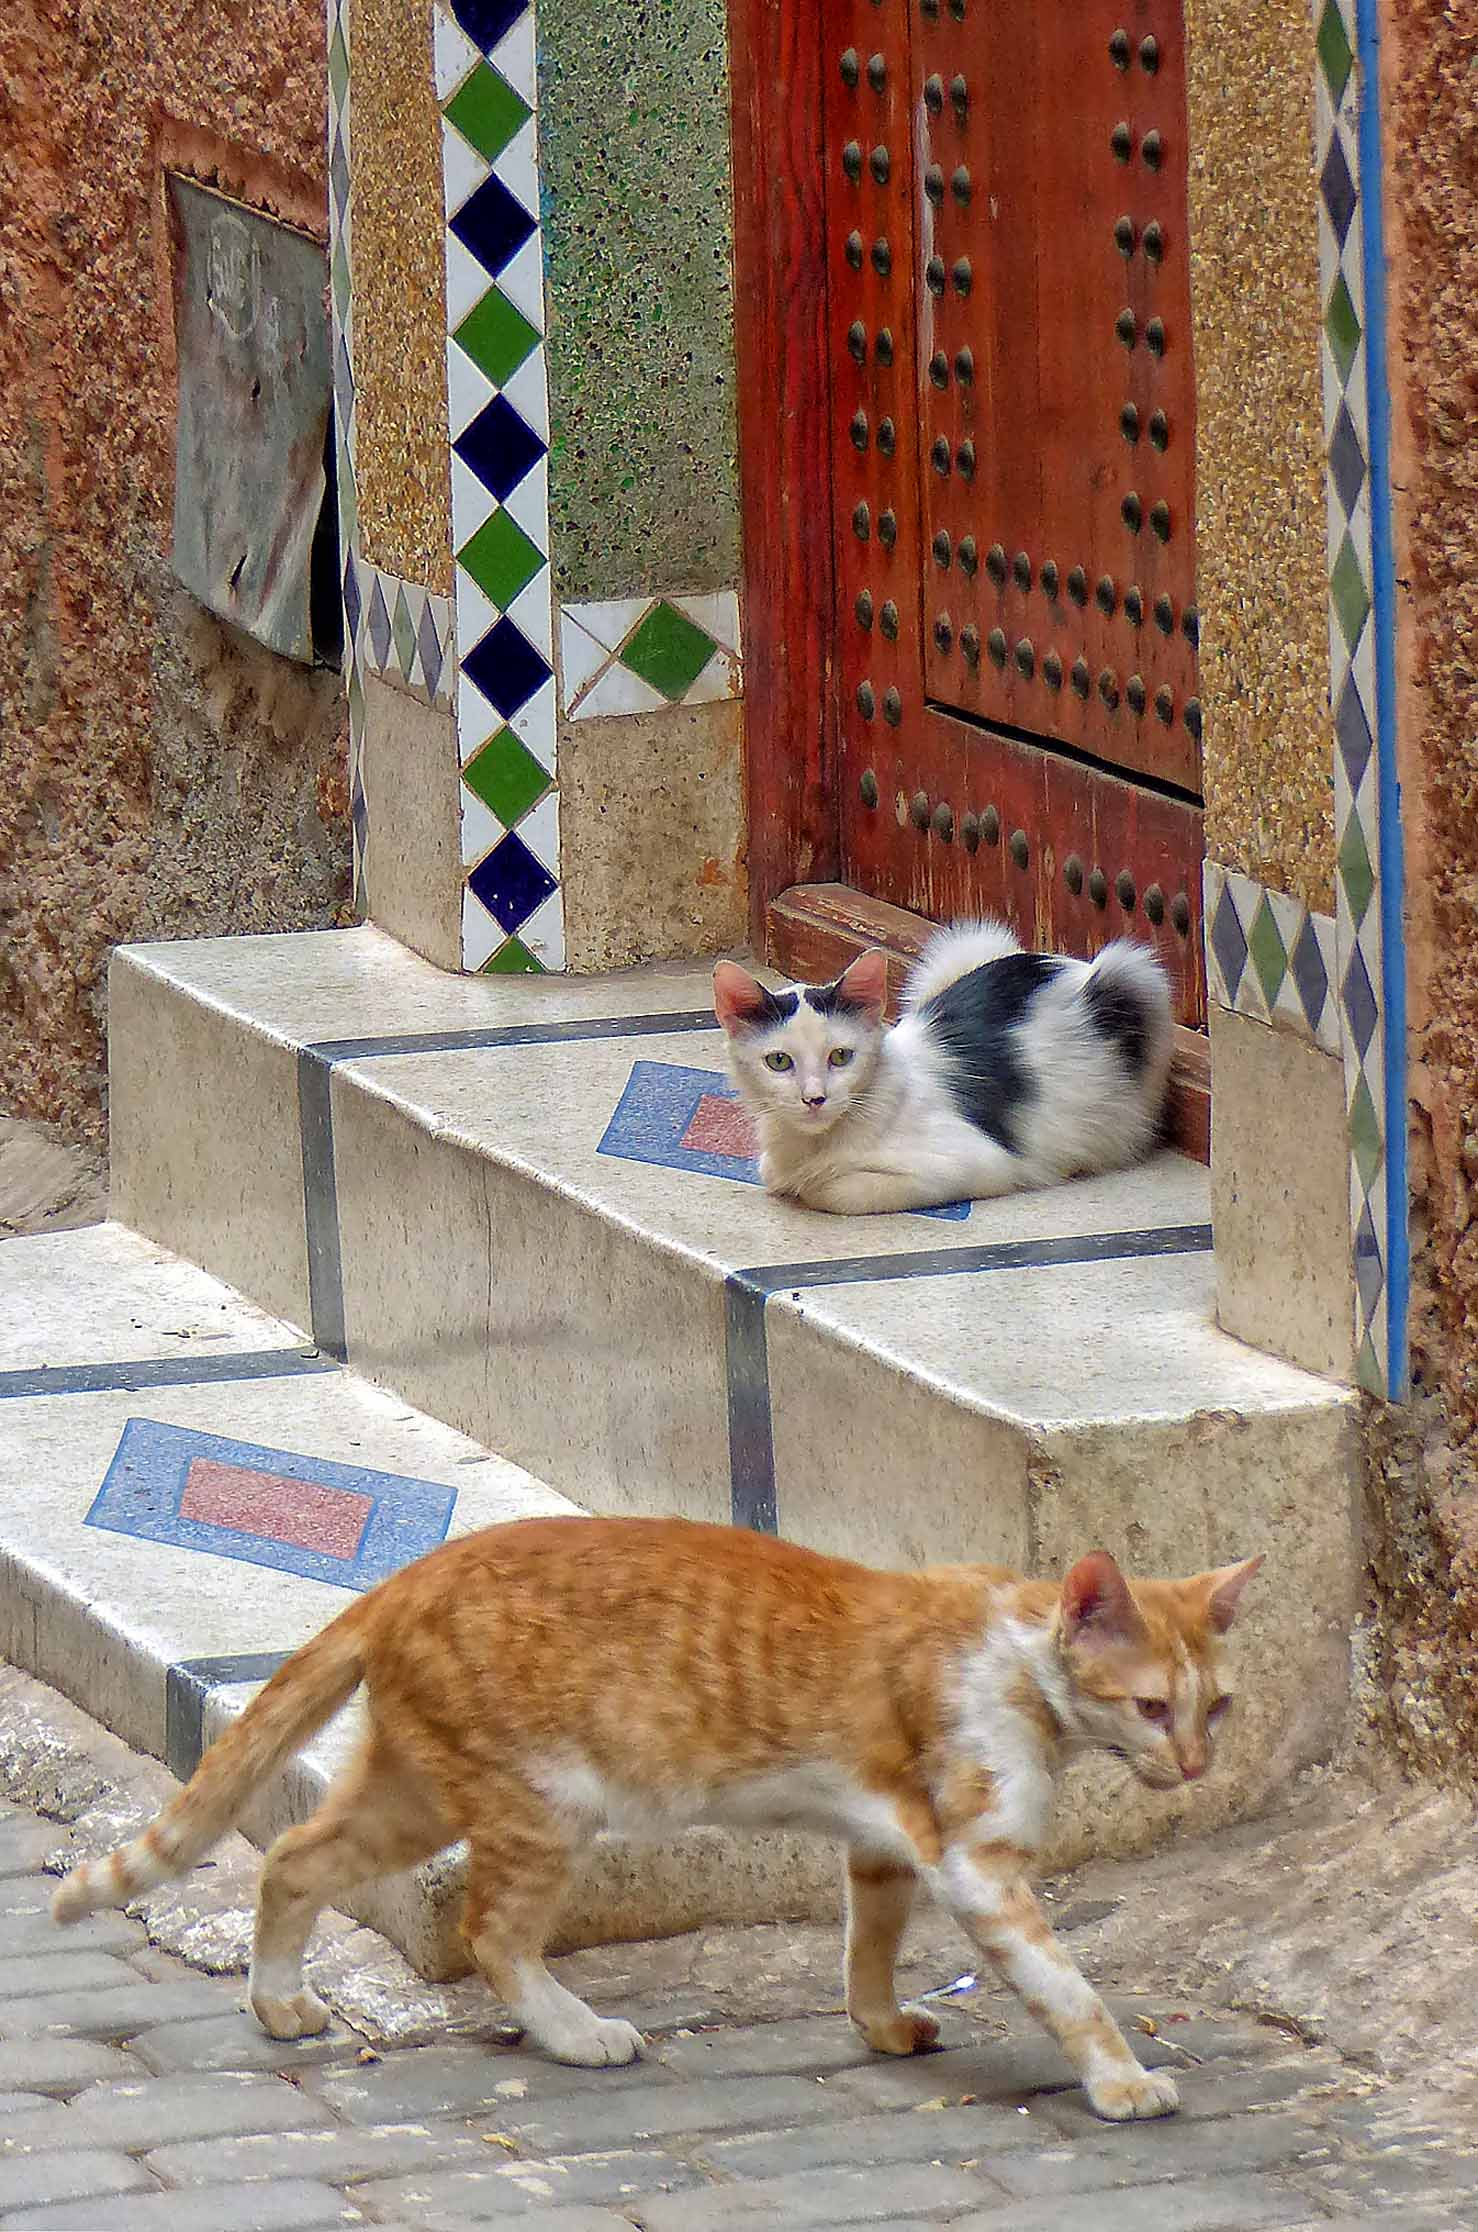 Doorstep with two cats